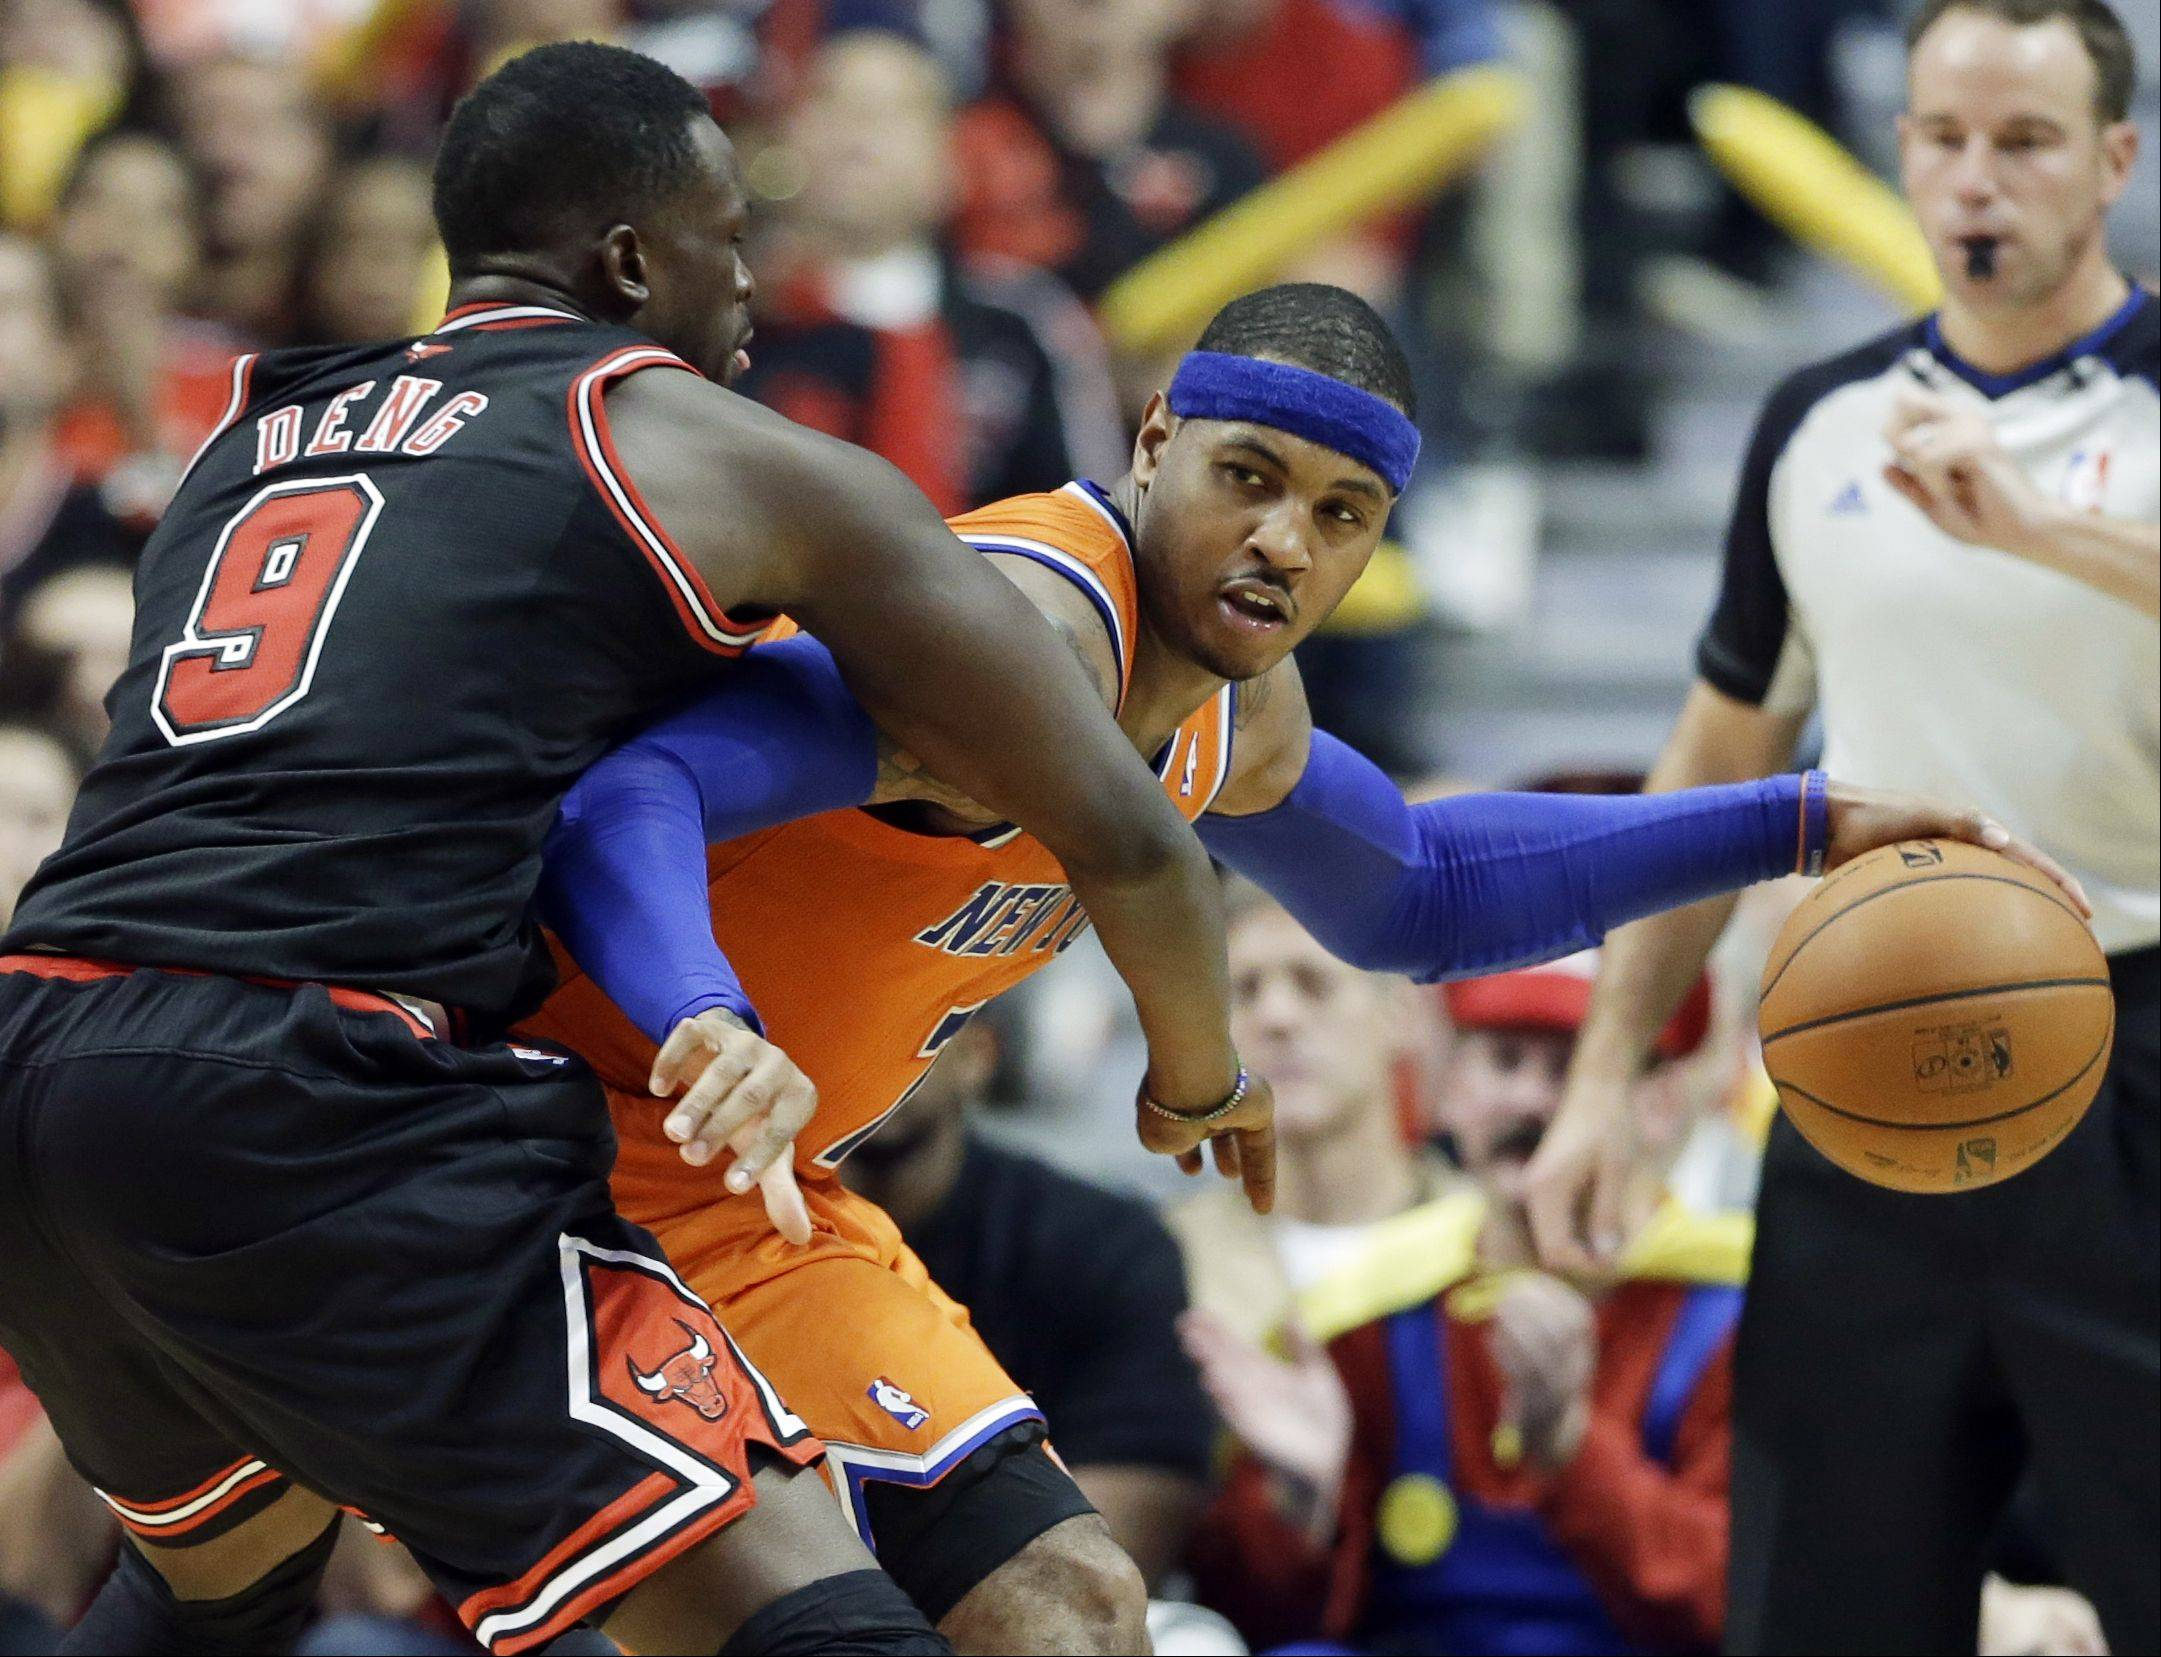 New York Knicks forward Carmelo Anthony, right, looks to a pass as Chicago Bulls forward Luol Deng guards during the second half.